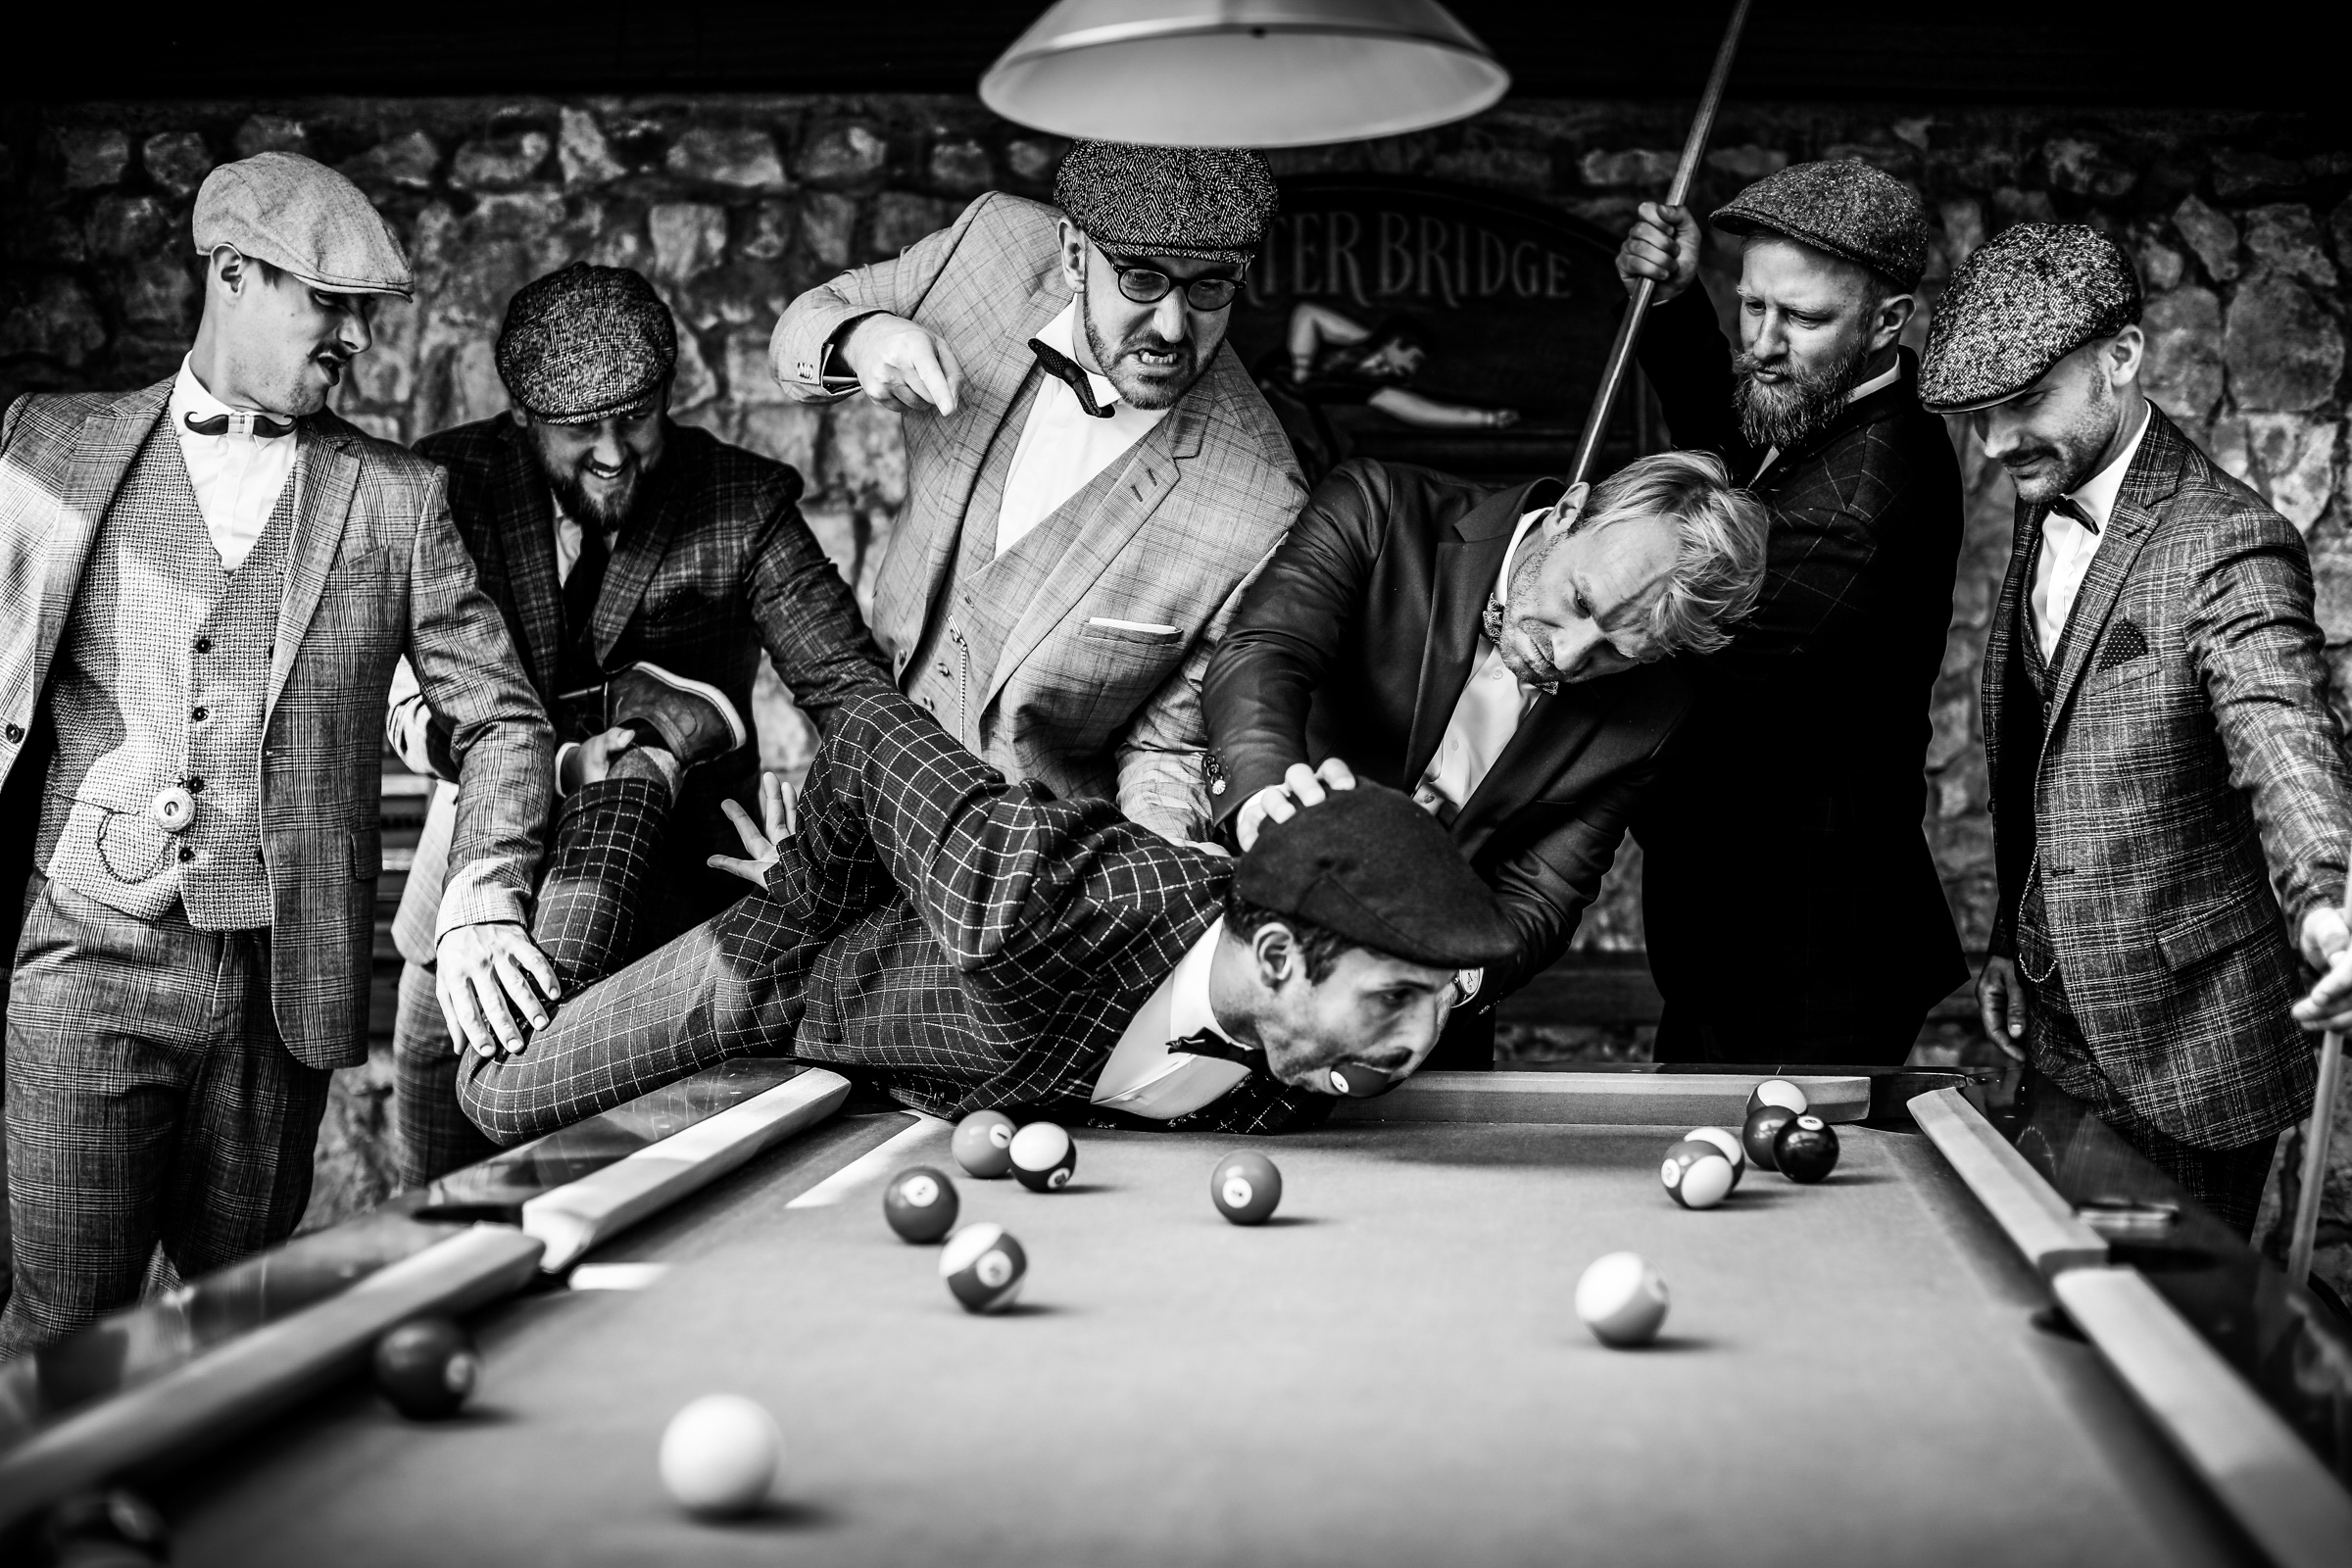 Playful pool game - photo by Julien Laurent-Georges